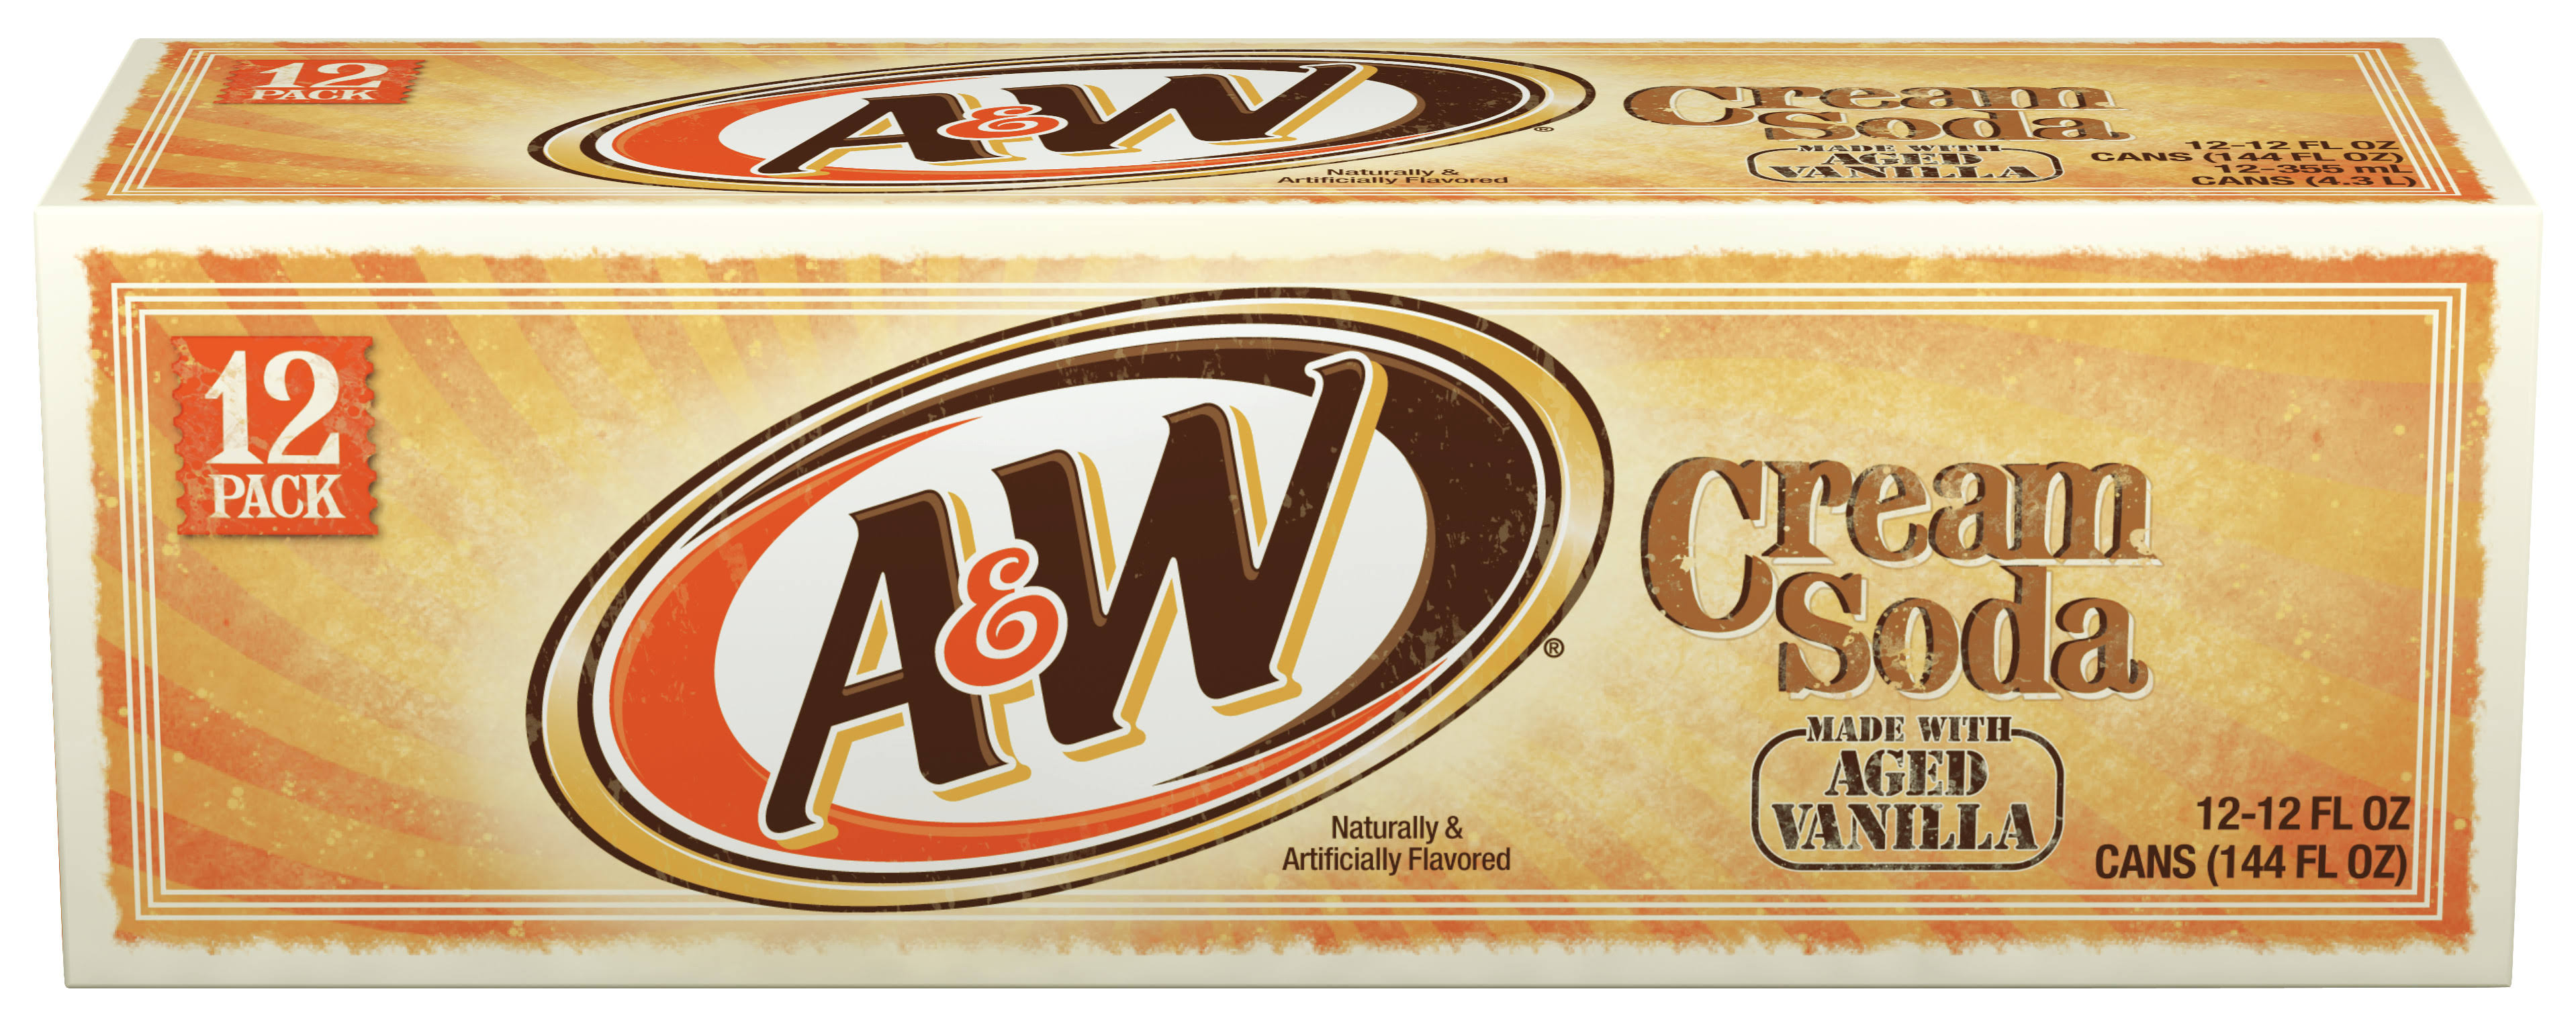 A&W Cream Soda - 12 Pack, 4260ml